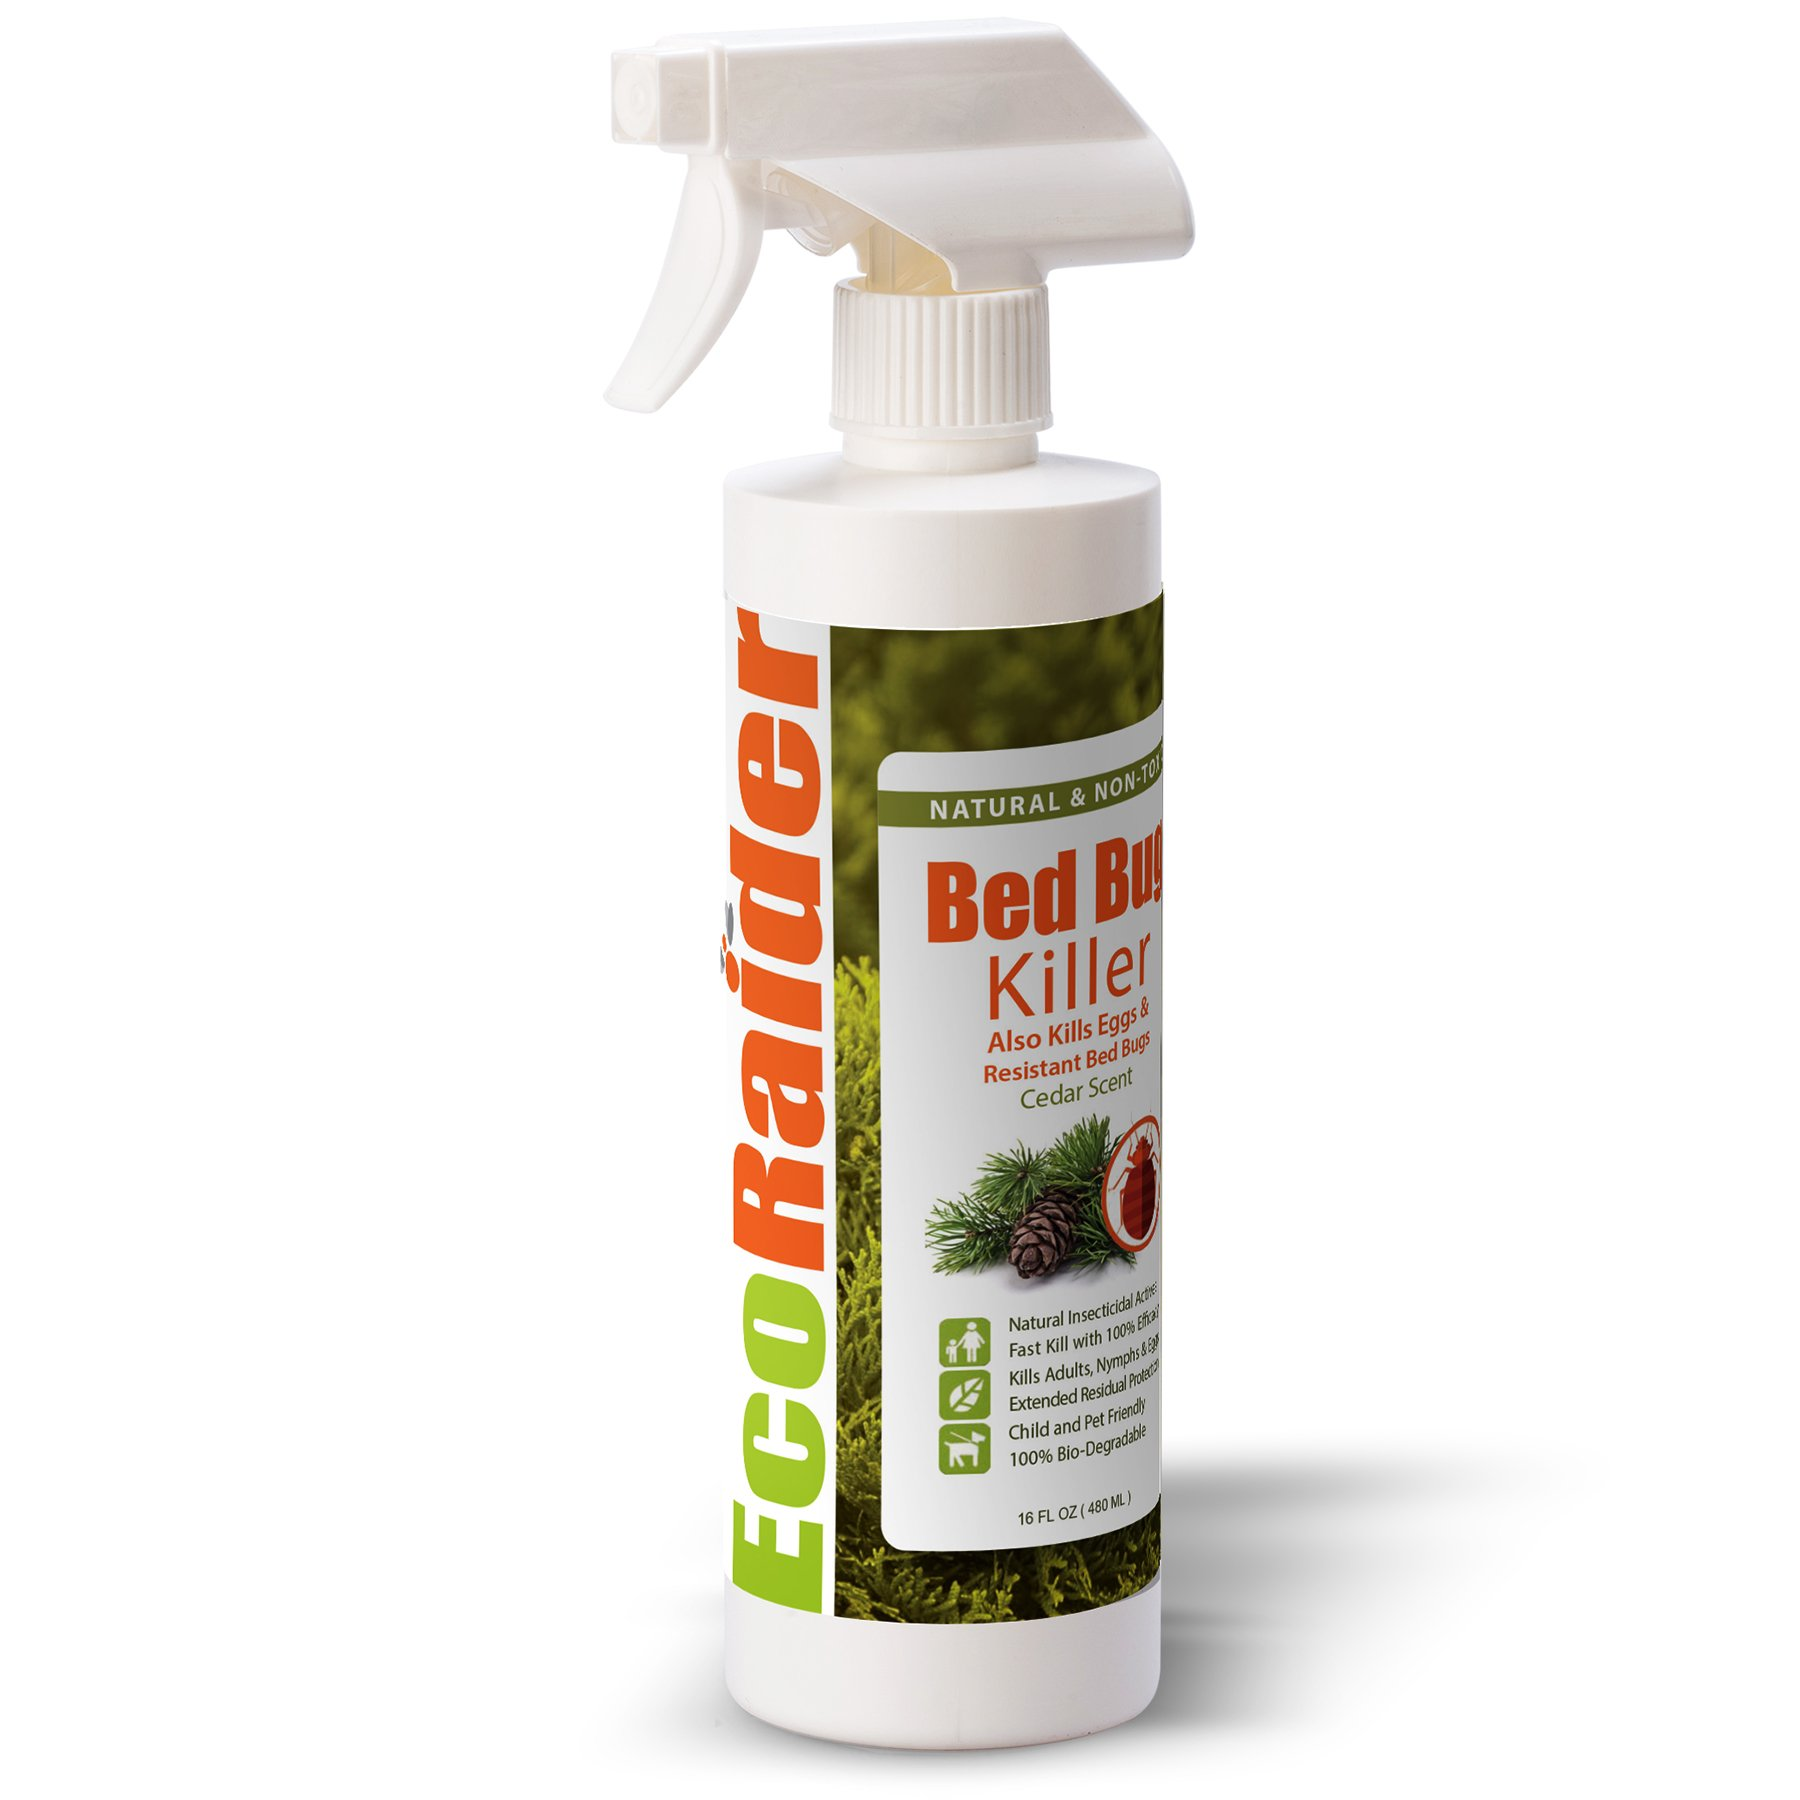 EcoRaider Natural Bed Bug/Dust Mite Killer Spray(480ml), Fast Eradication + Eliminates Eggs and Resistant Bugs, Extended Residual Protection , Non-Toxic + Safe for Children & Pets